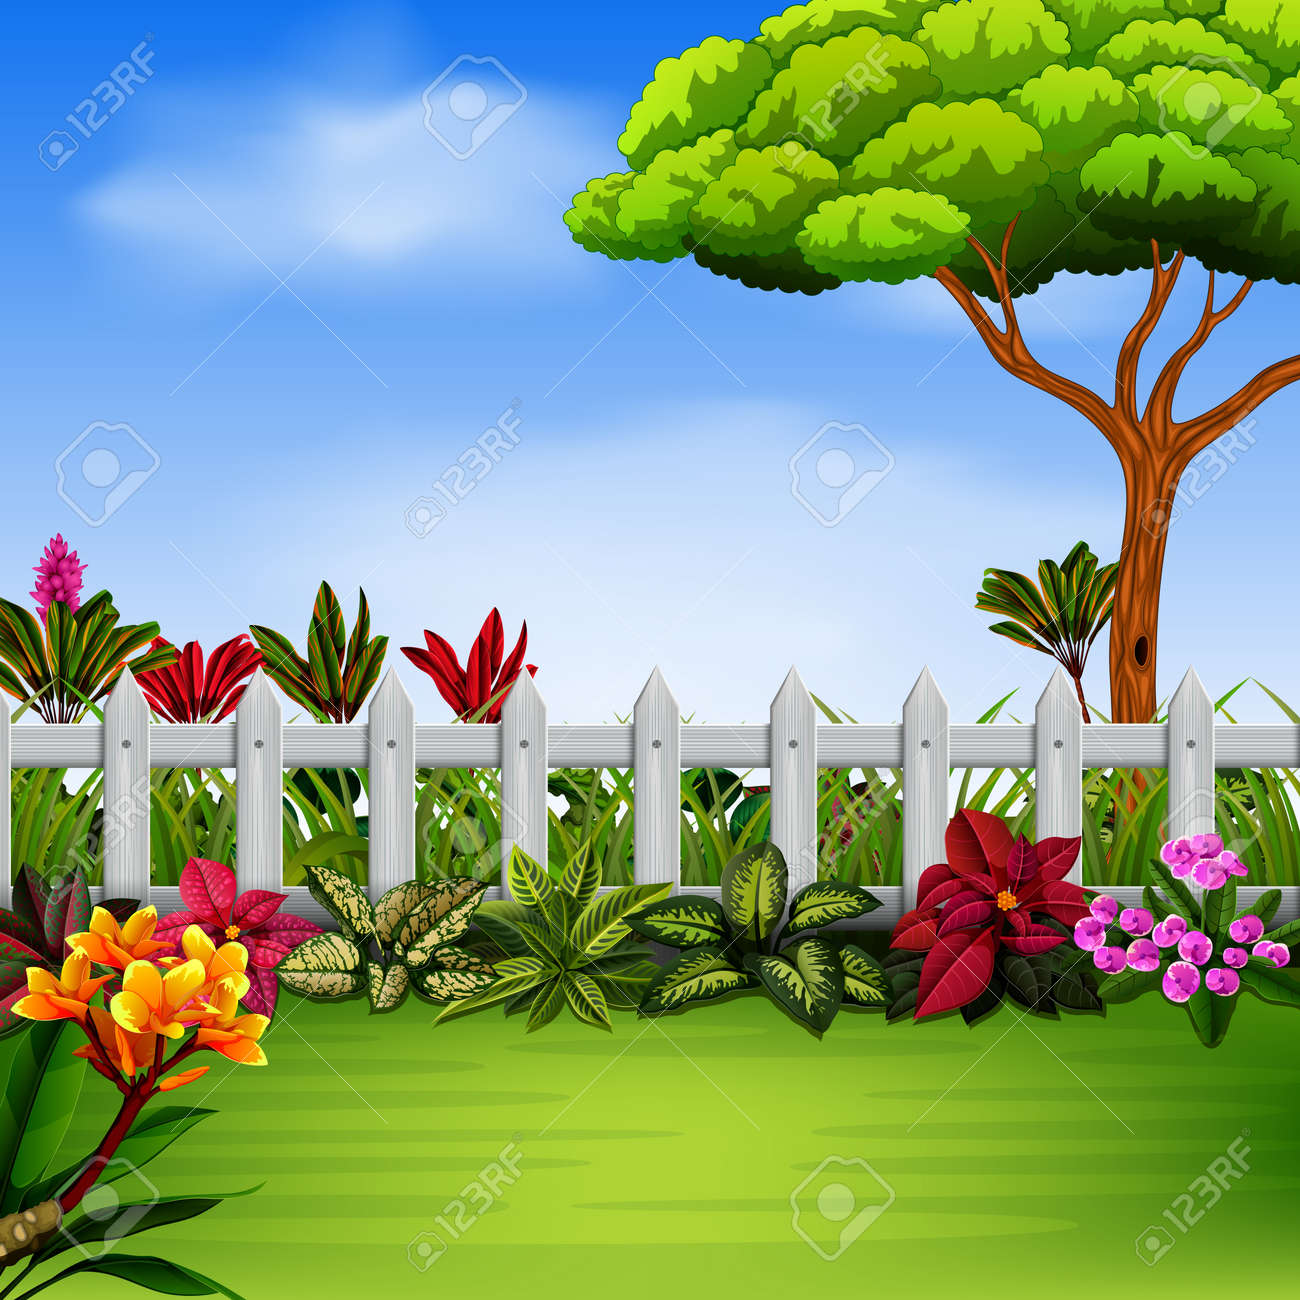 The Beautiful Garden With The Fance And Flowers Royalty Free Cliparts Vectors And Stock Illustration Image 107902926